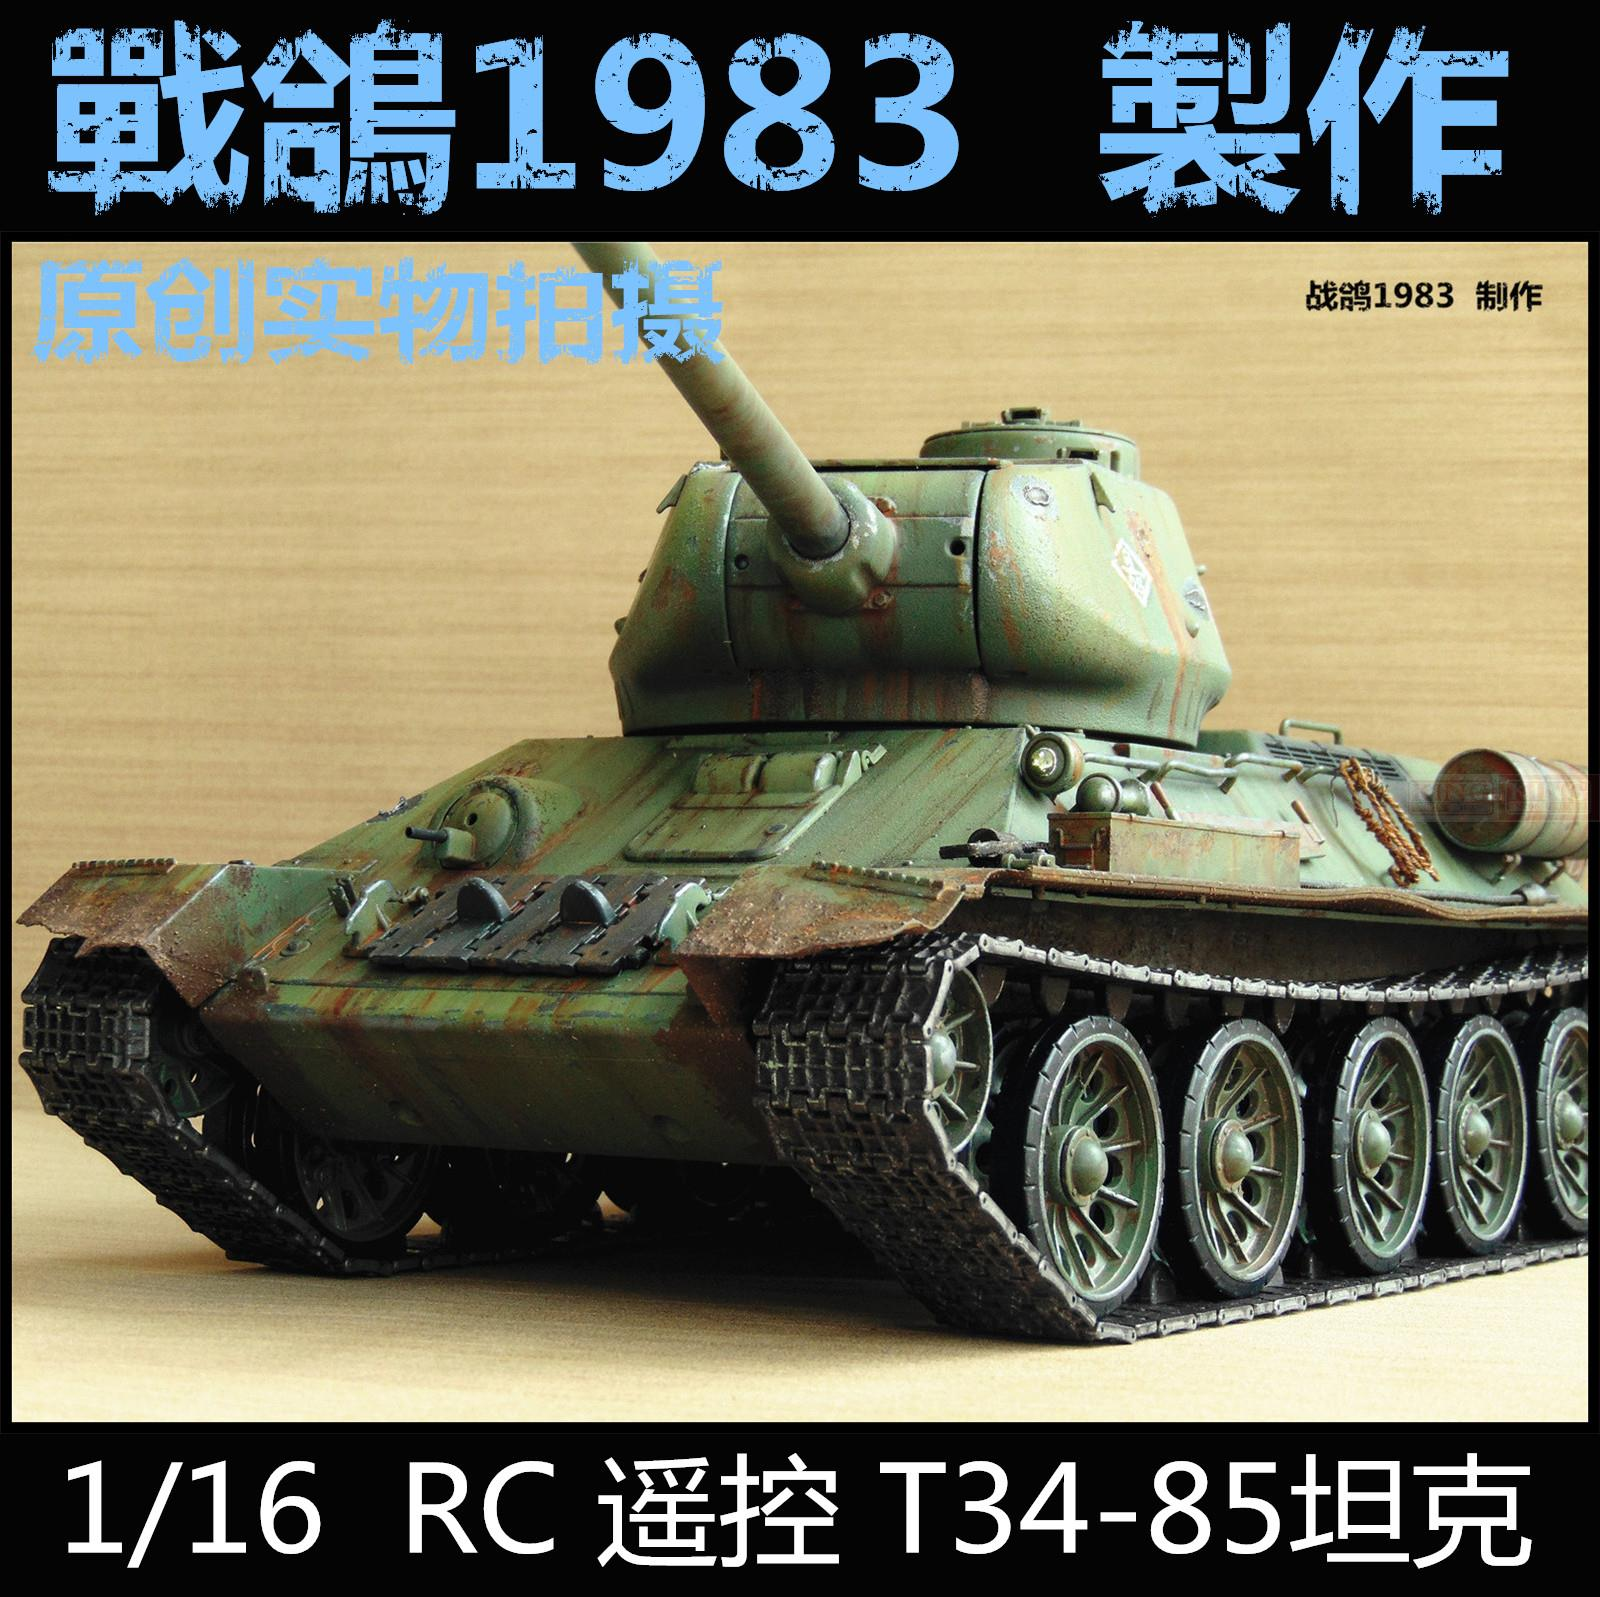 KNL HOBBY Heng Long, 1 / 16T34RC tank model remote control car shell foundry heavy coating of paint to do the old knl hobby voyager model pe35418 m1a1 tusk1 ubilan